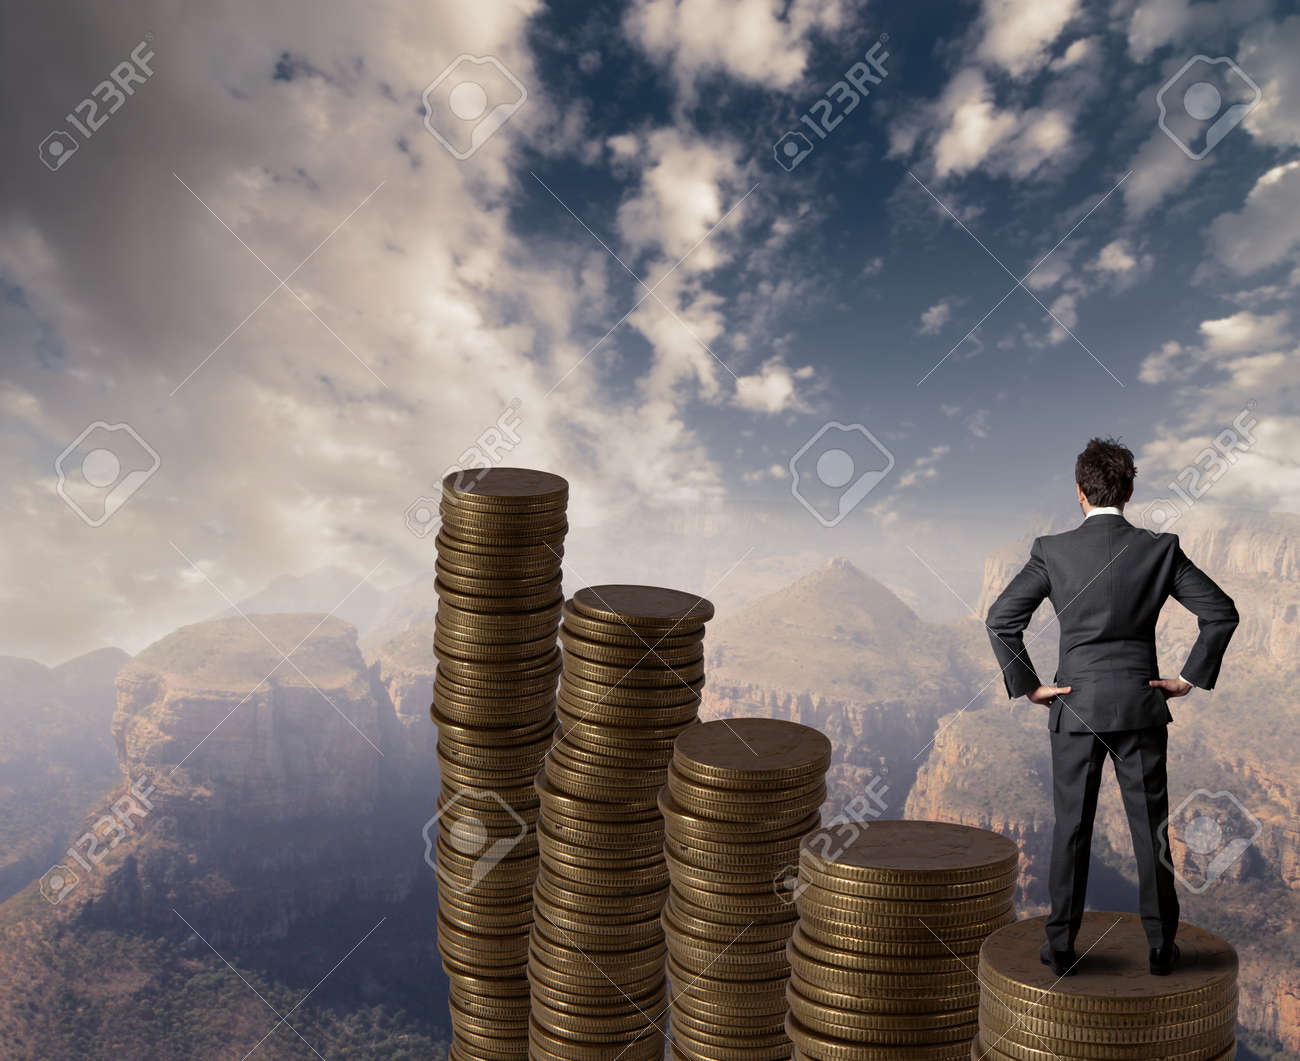 Concept of business and money growth Stock Photo - 16828187